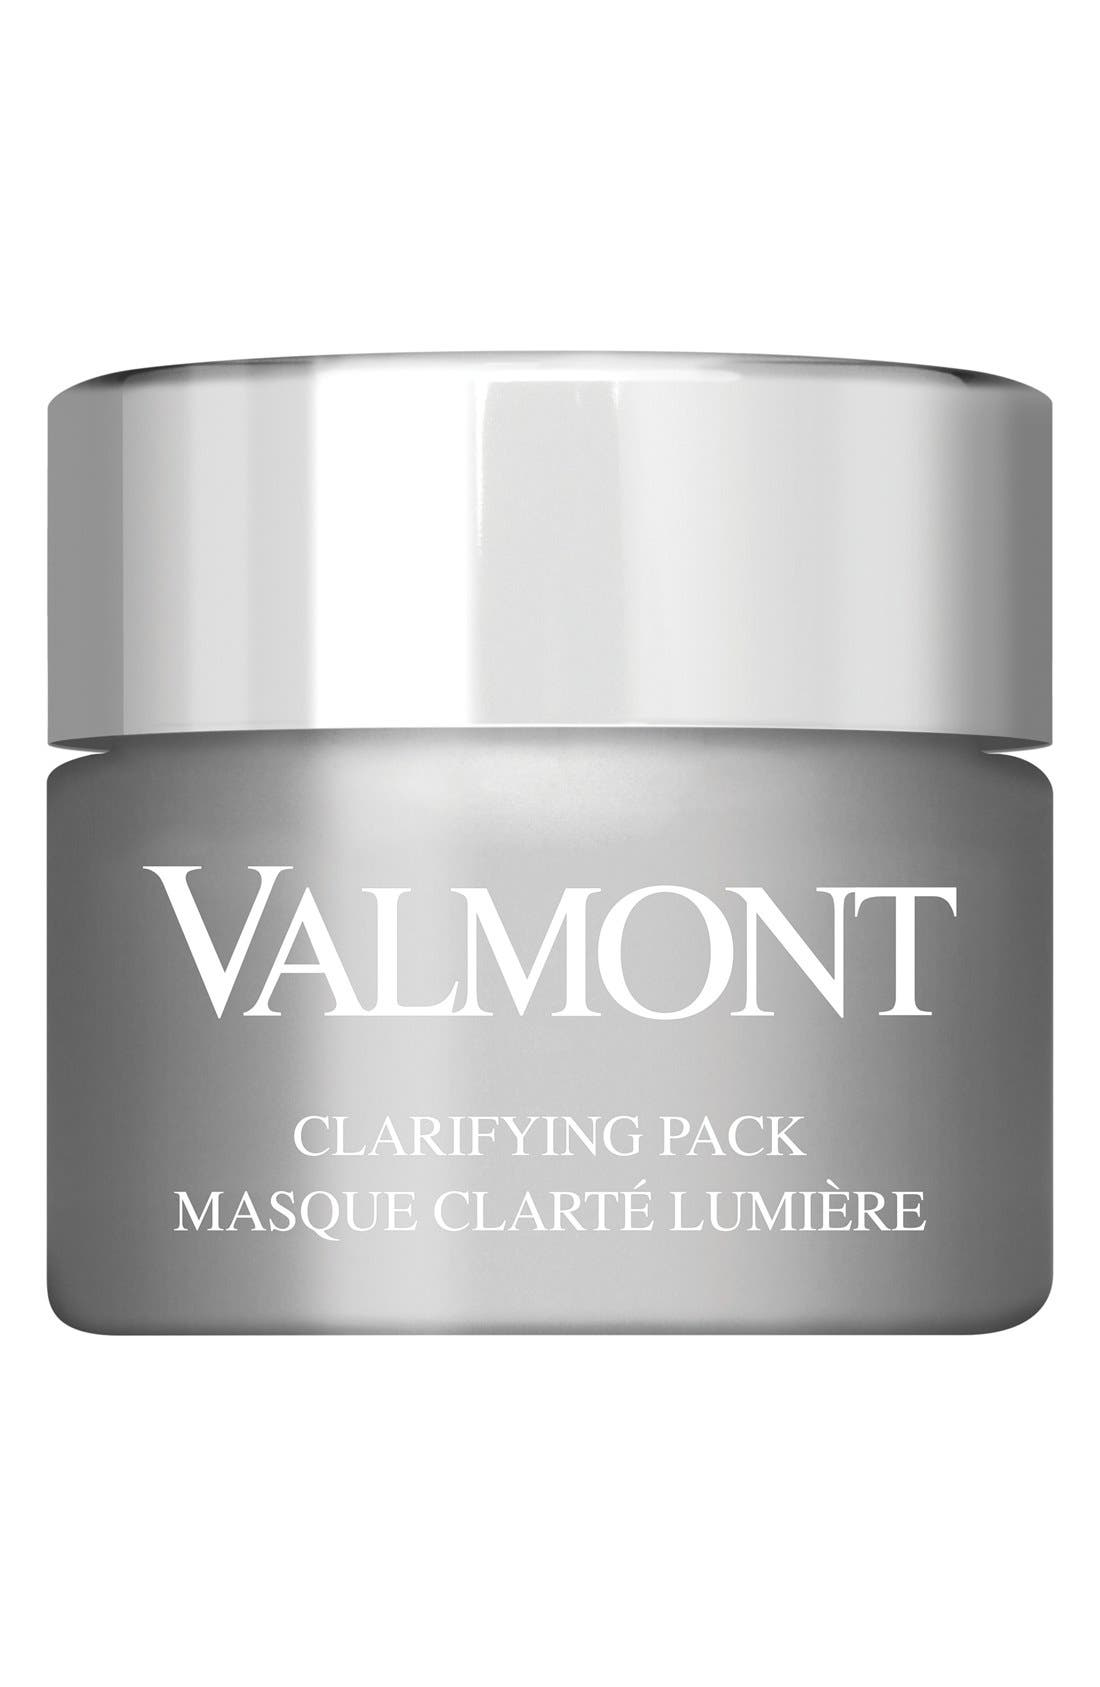 Valmont Clarifying Pack